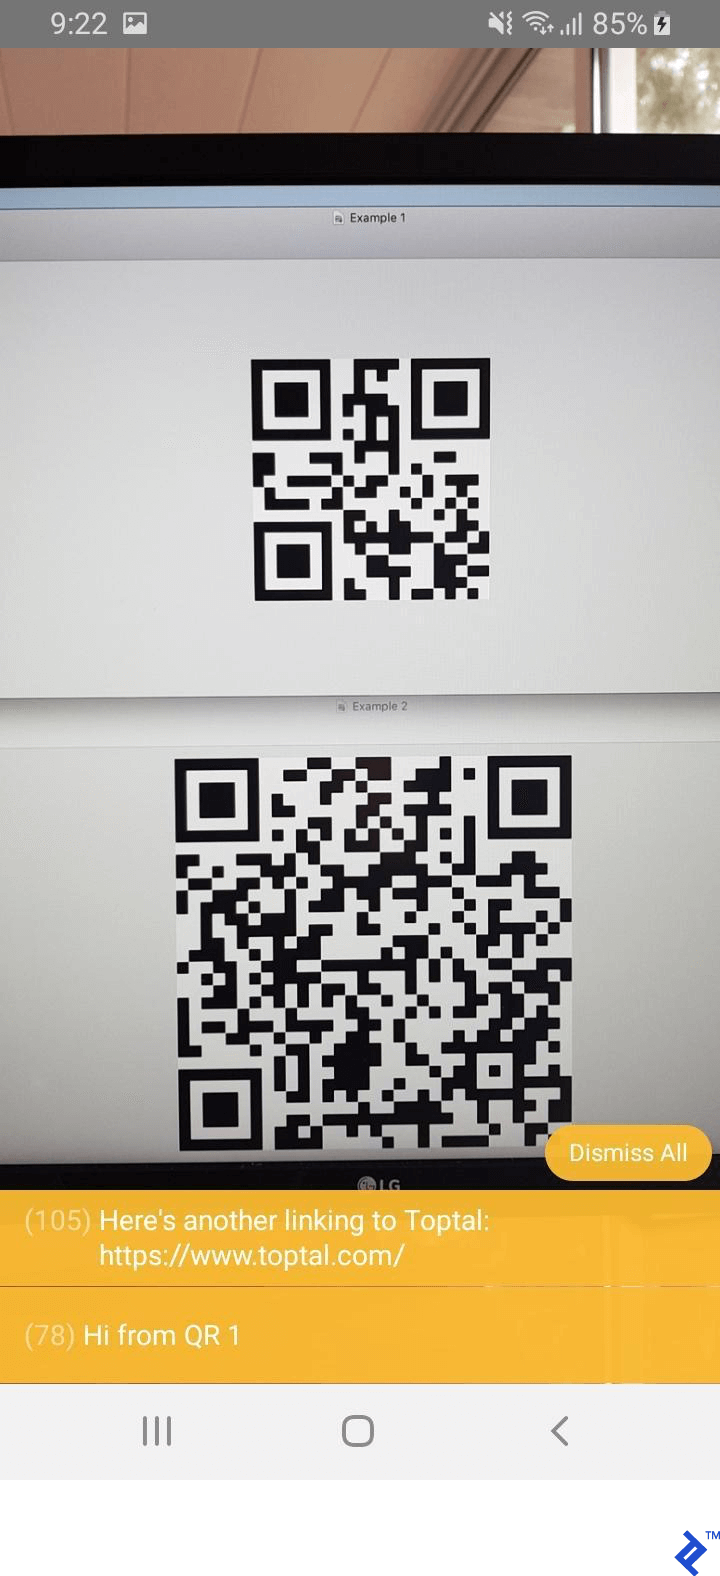 "The same camera angle as before, now with console popups at the bottom having decoded the messages in the QR codes: ""Hi from QR1"" and Toptal's web site address."